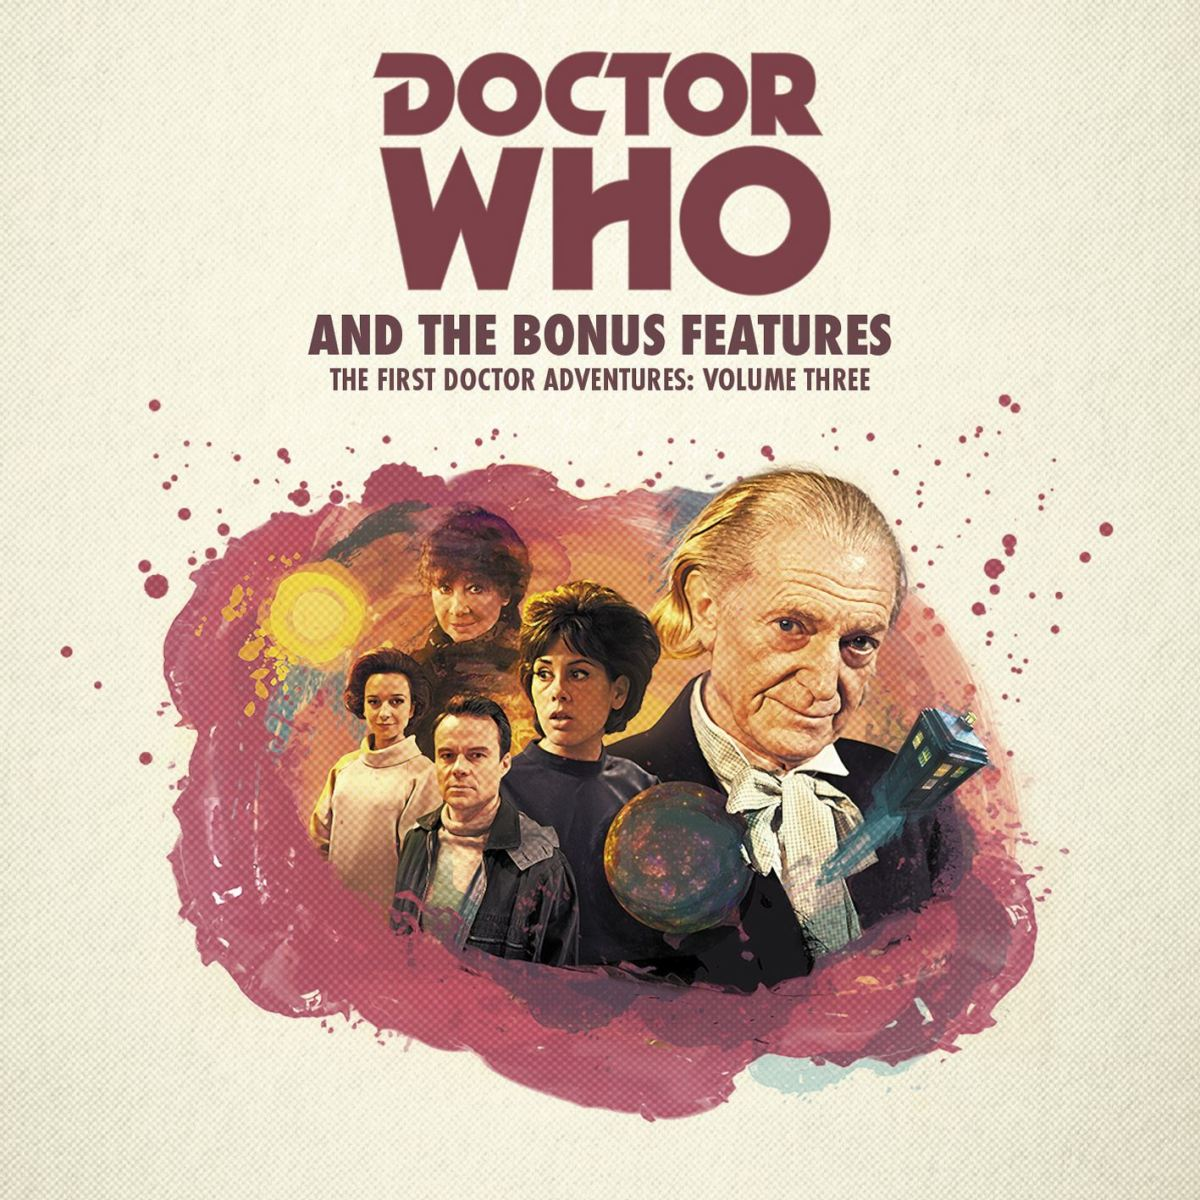 Target style artwork for First Doctor Adventures vol 03